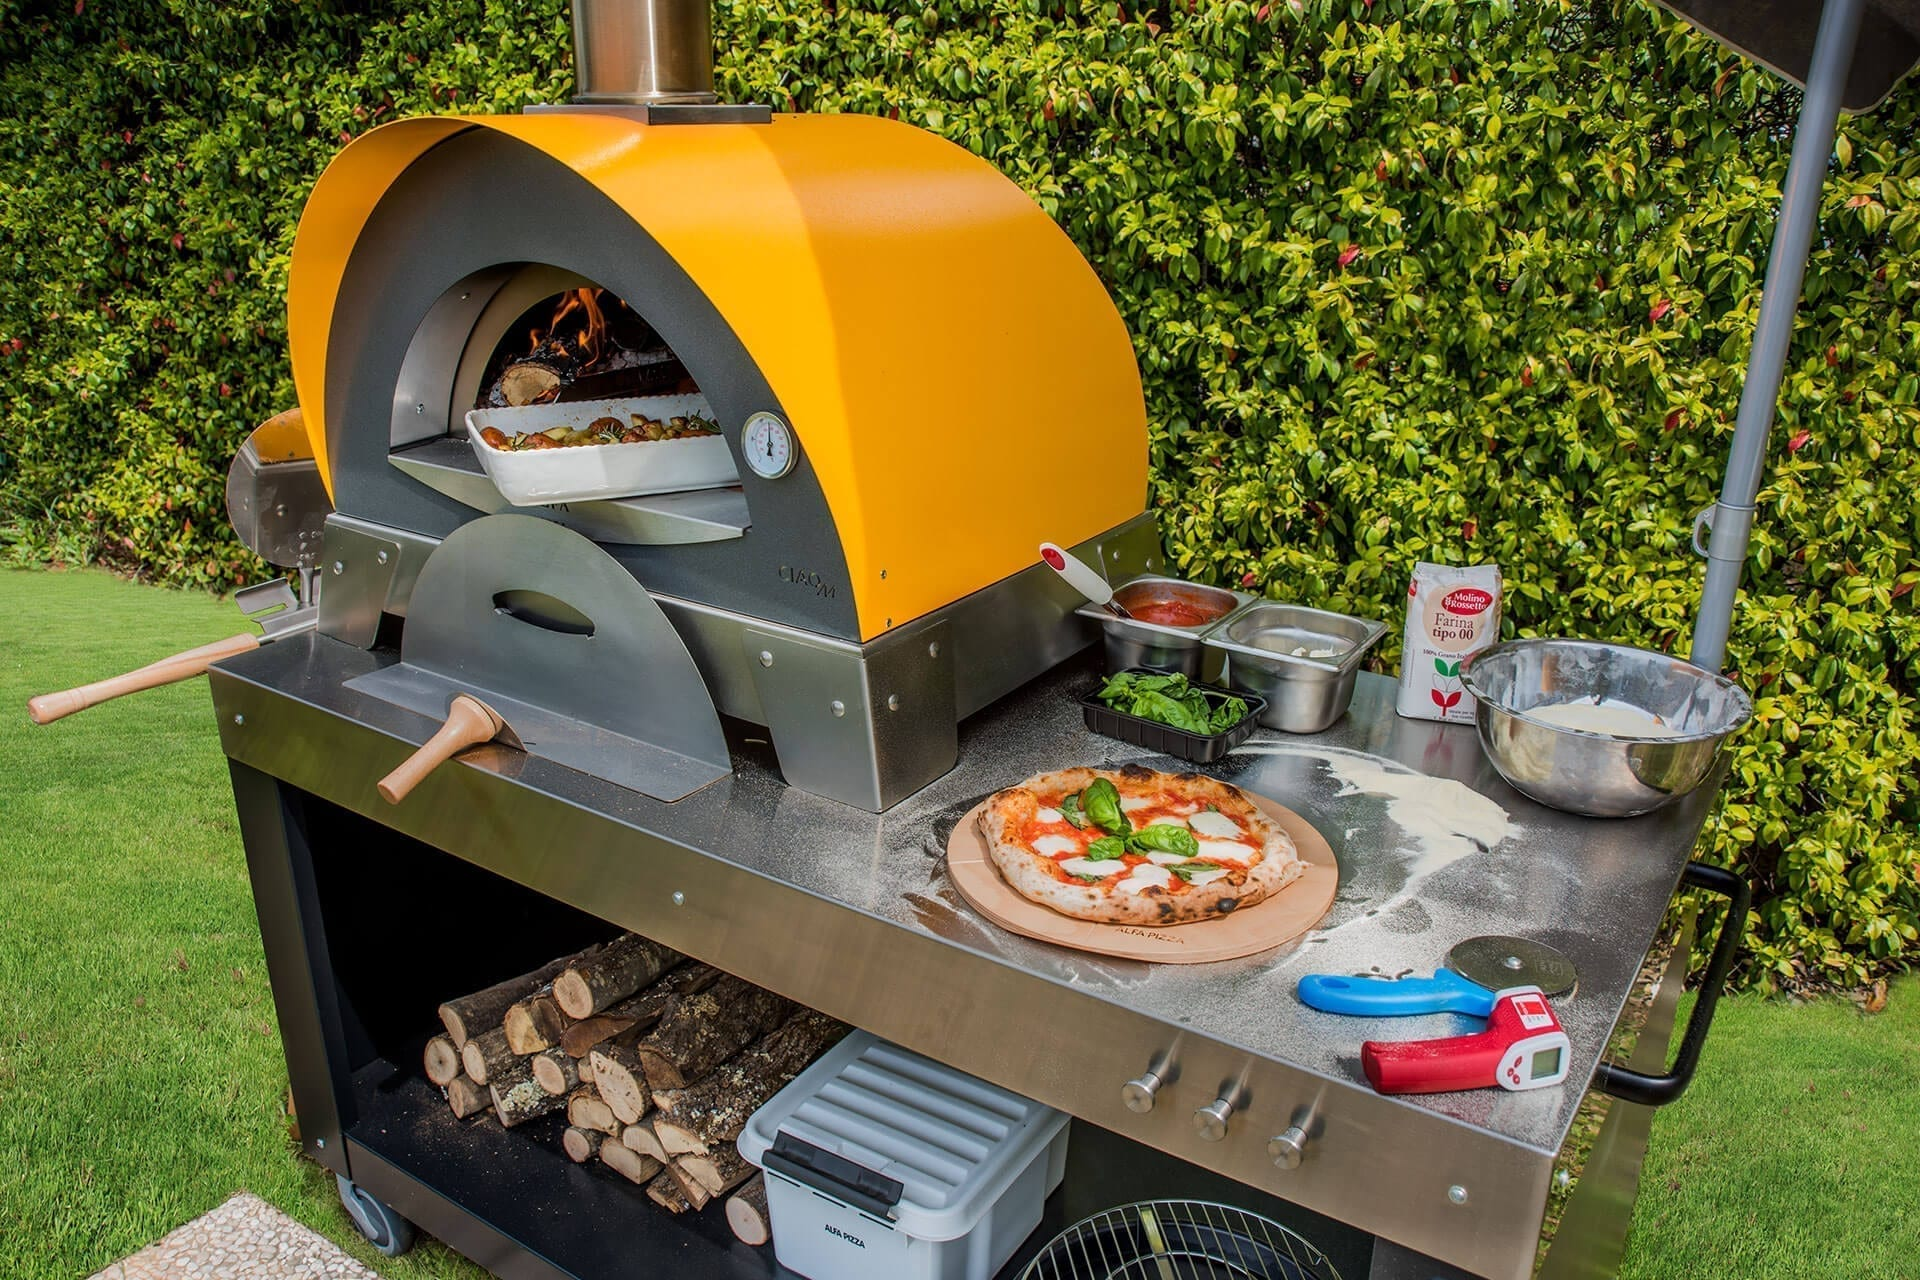 Are You Interested to Buy Outdoor Wood-fired Oven?